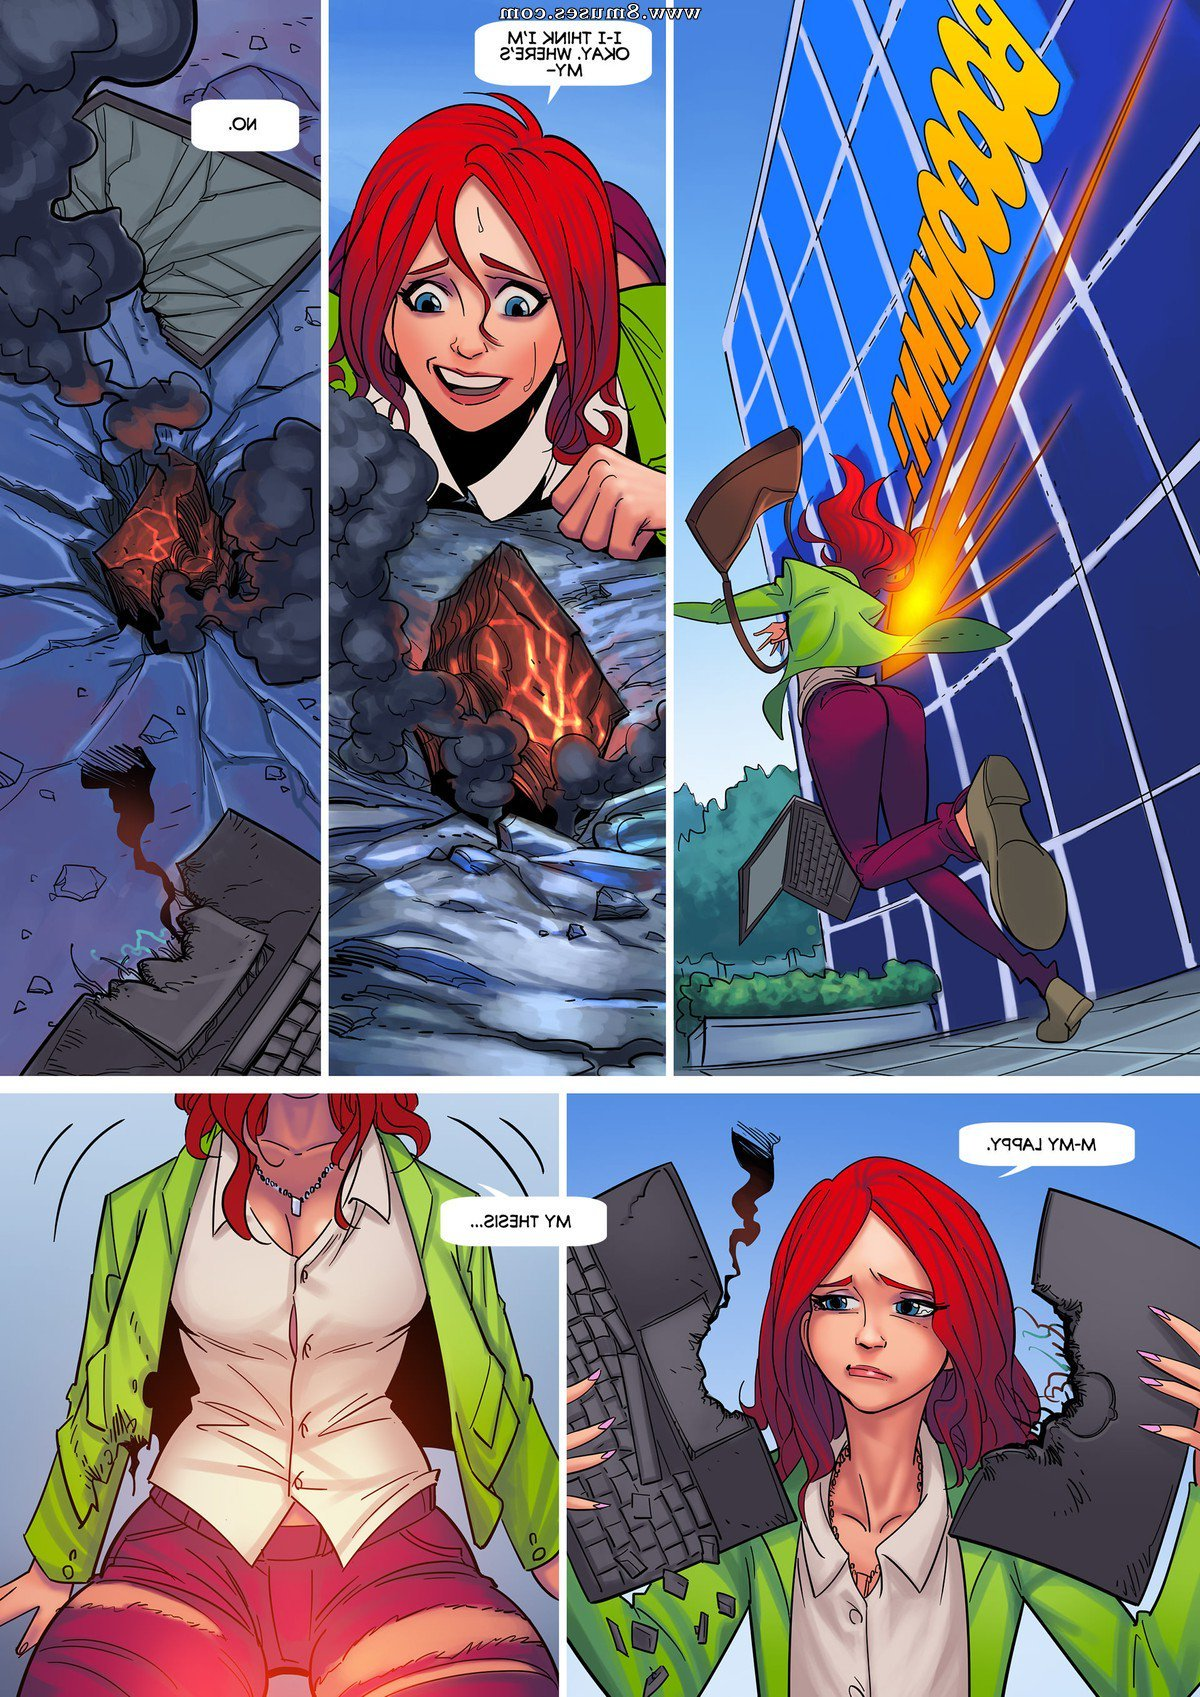 Giantess-Fan-Comics/Worst-Day-Ever/Issue-1 Worst_Day_Ever_-_Issue_1_7.jpg